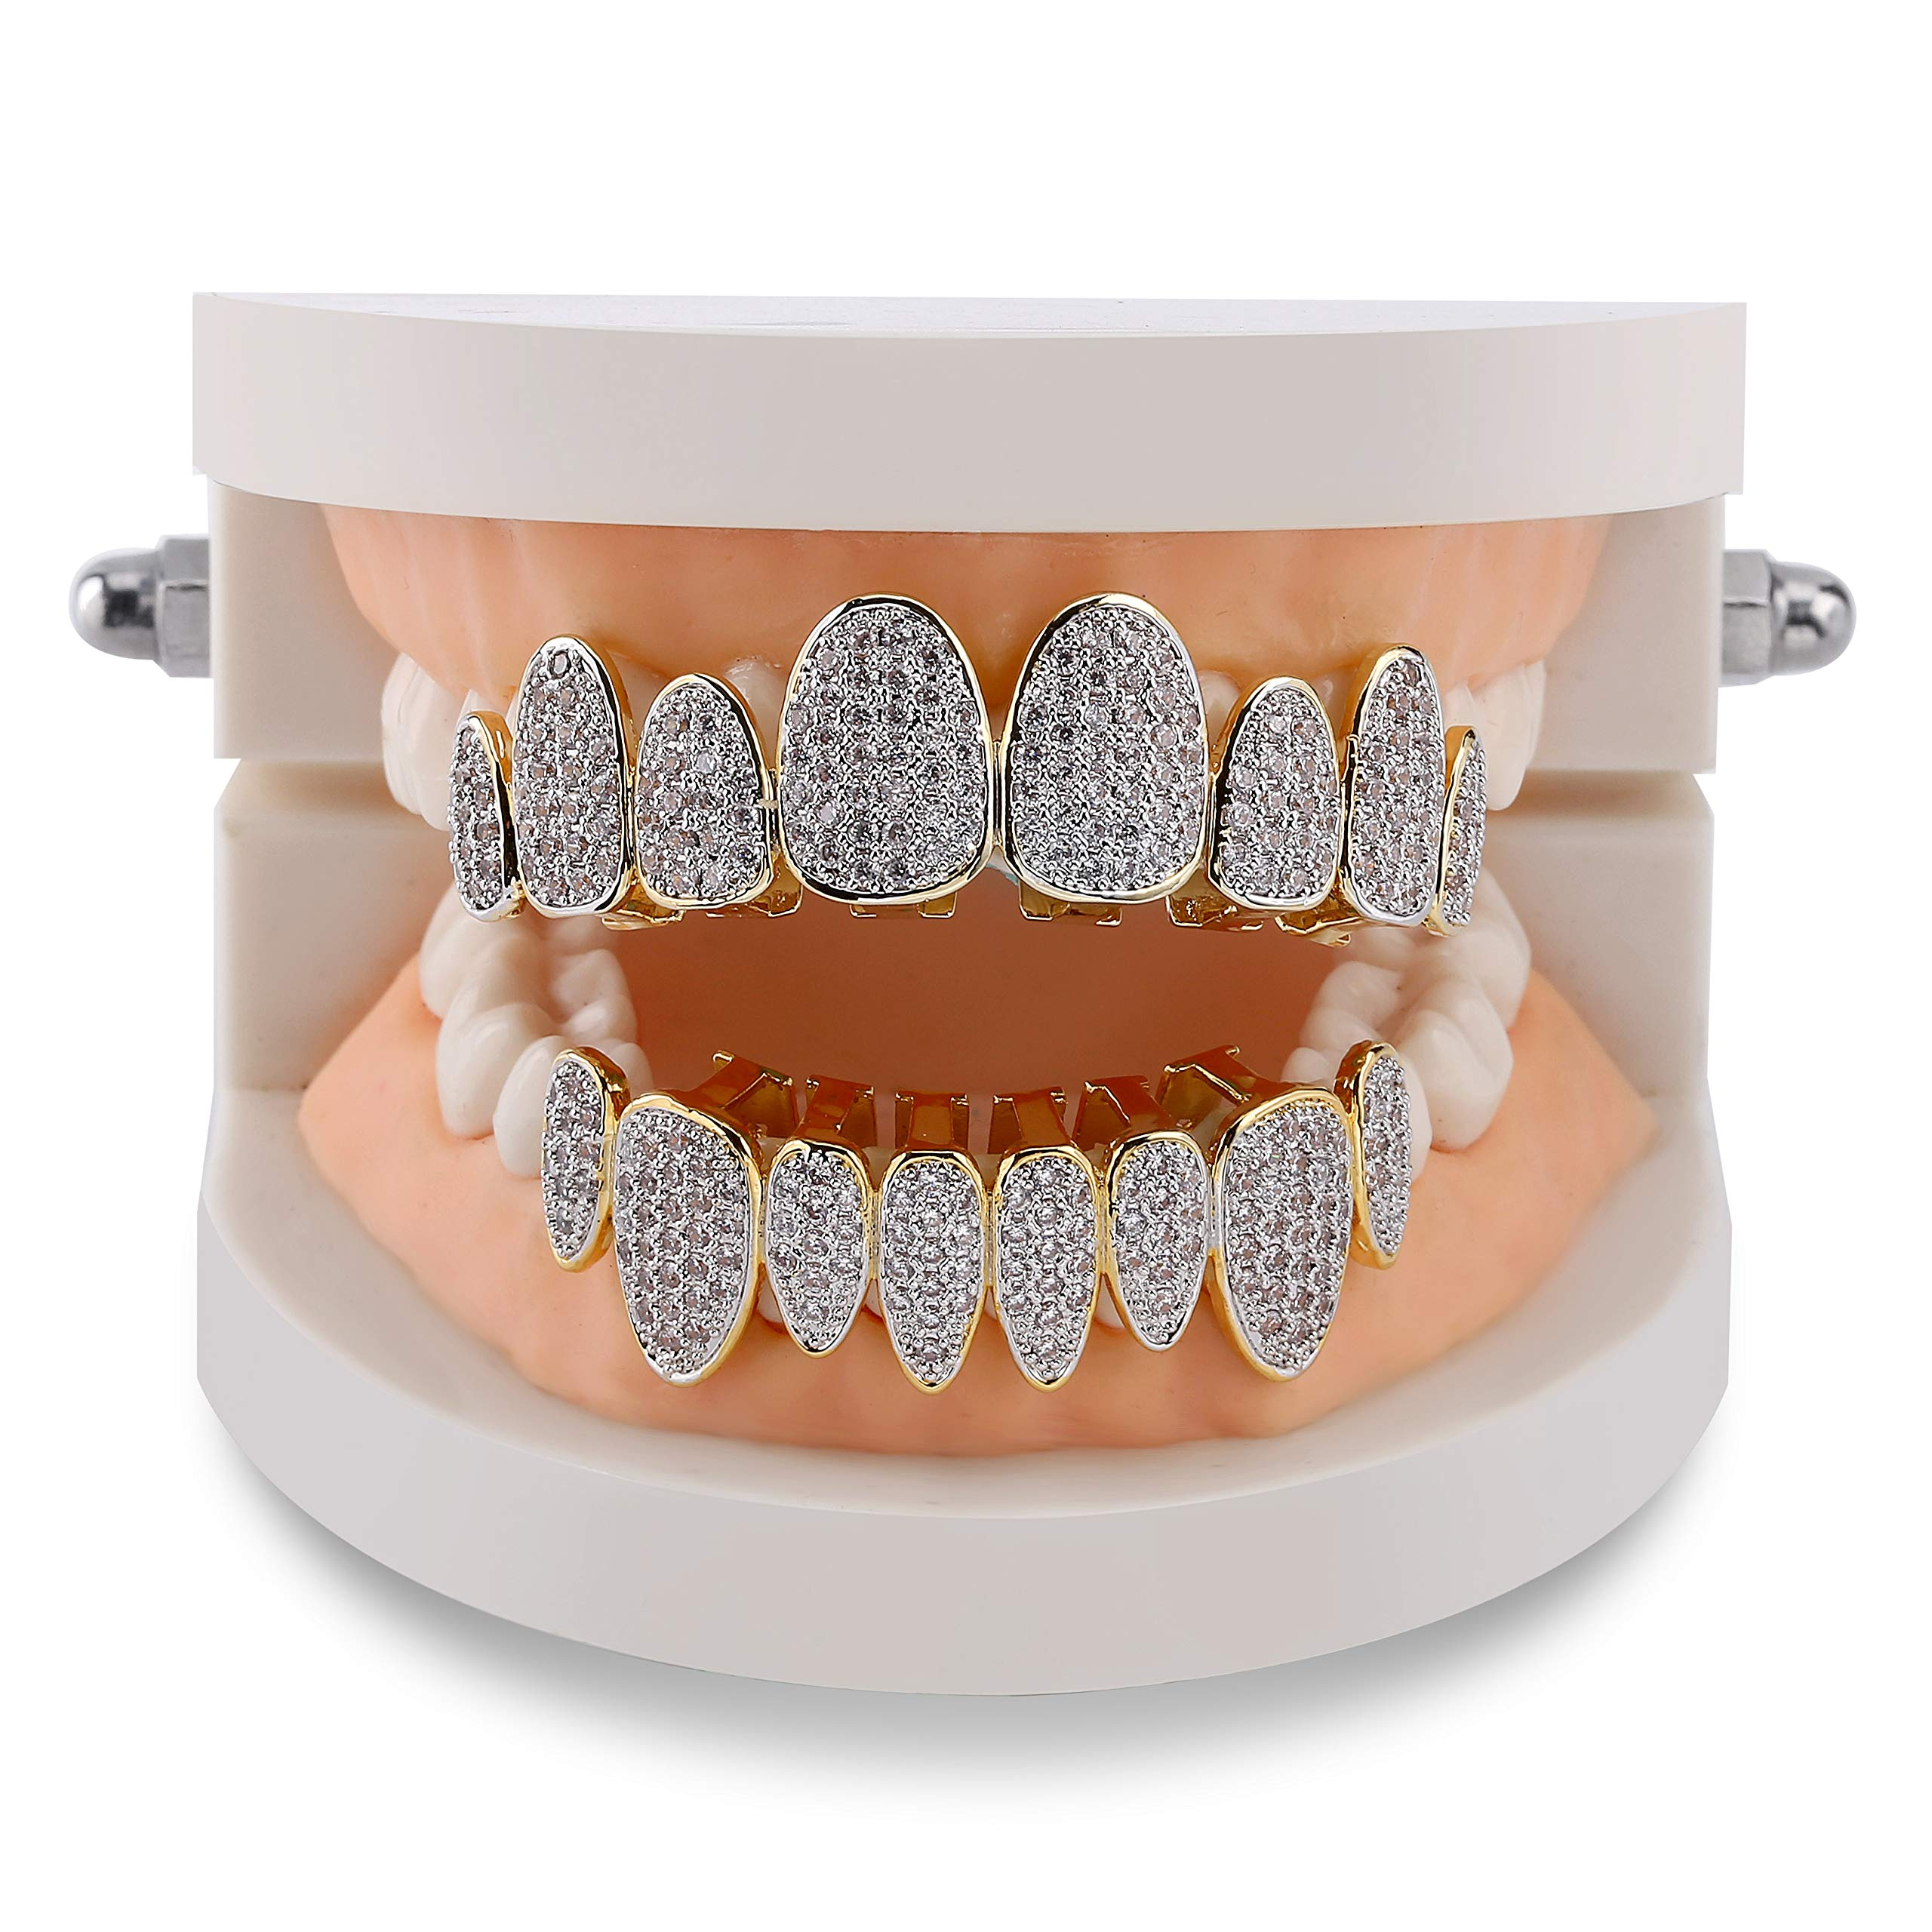 TOPGRILLZ 18K Gold Plated Iced Out Simulated Diamond Grillz Top and Bottom Grills for Your Teeth with Extra Molding Bars Hip Hop (Gold Set) by TOPGRILLZ (Image #7)